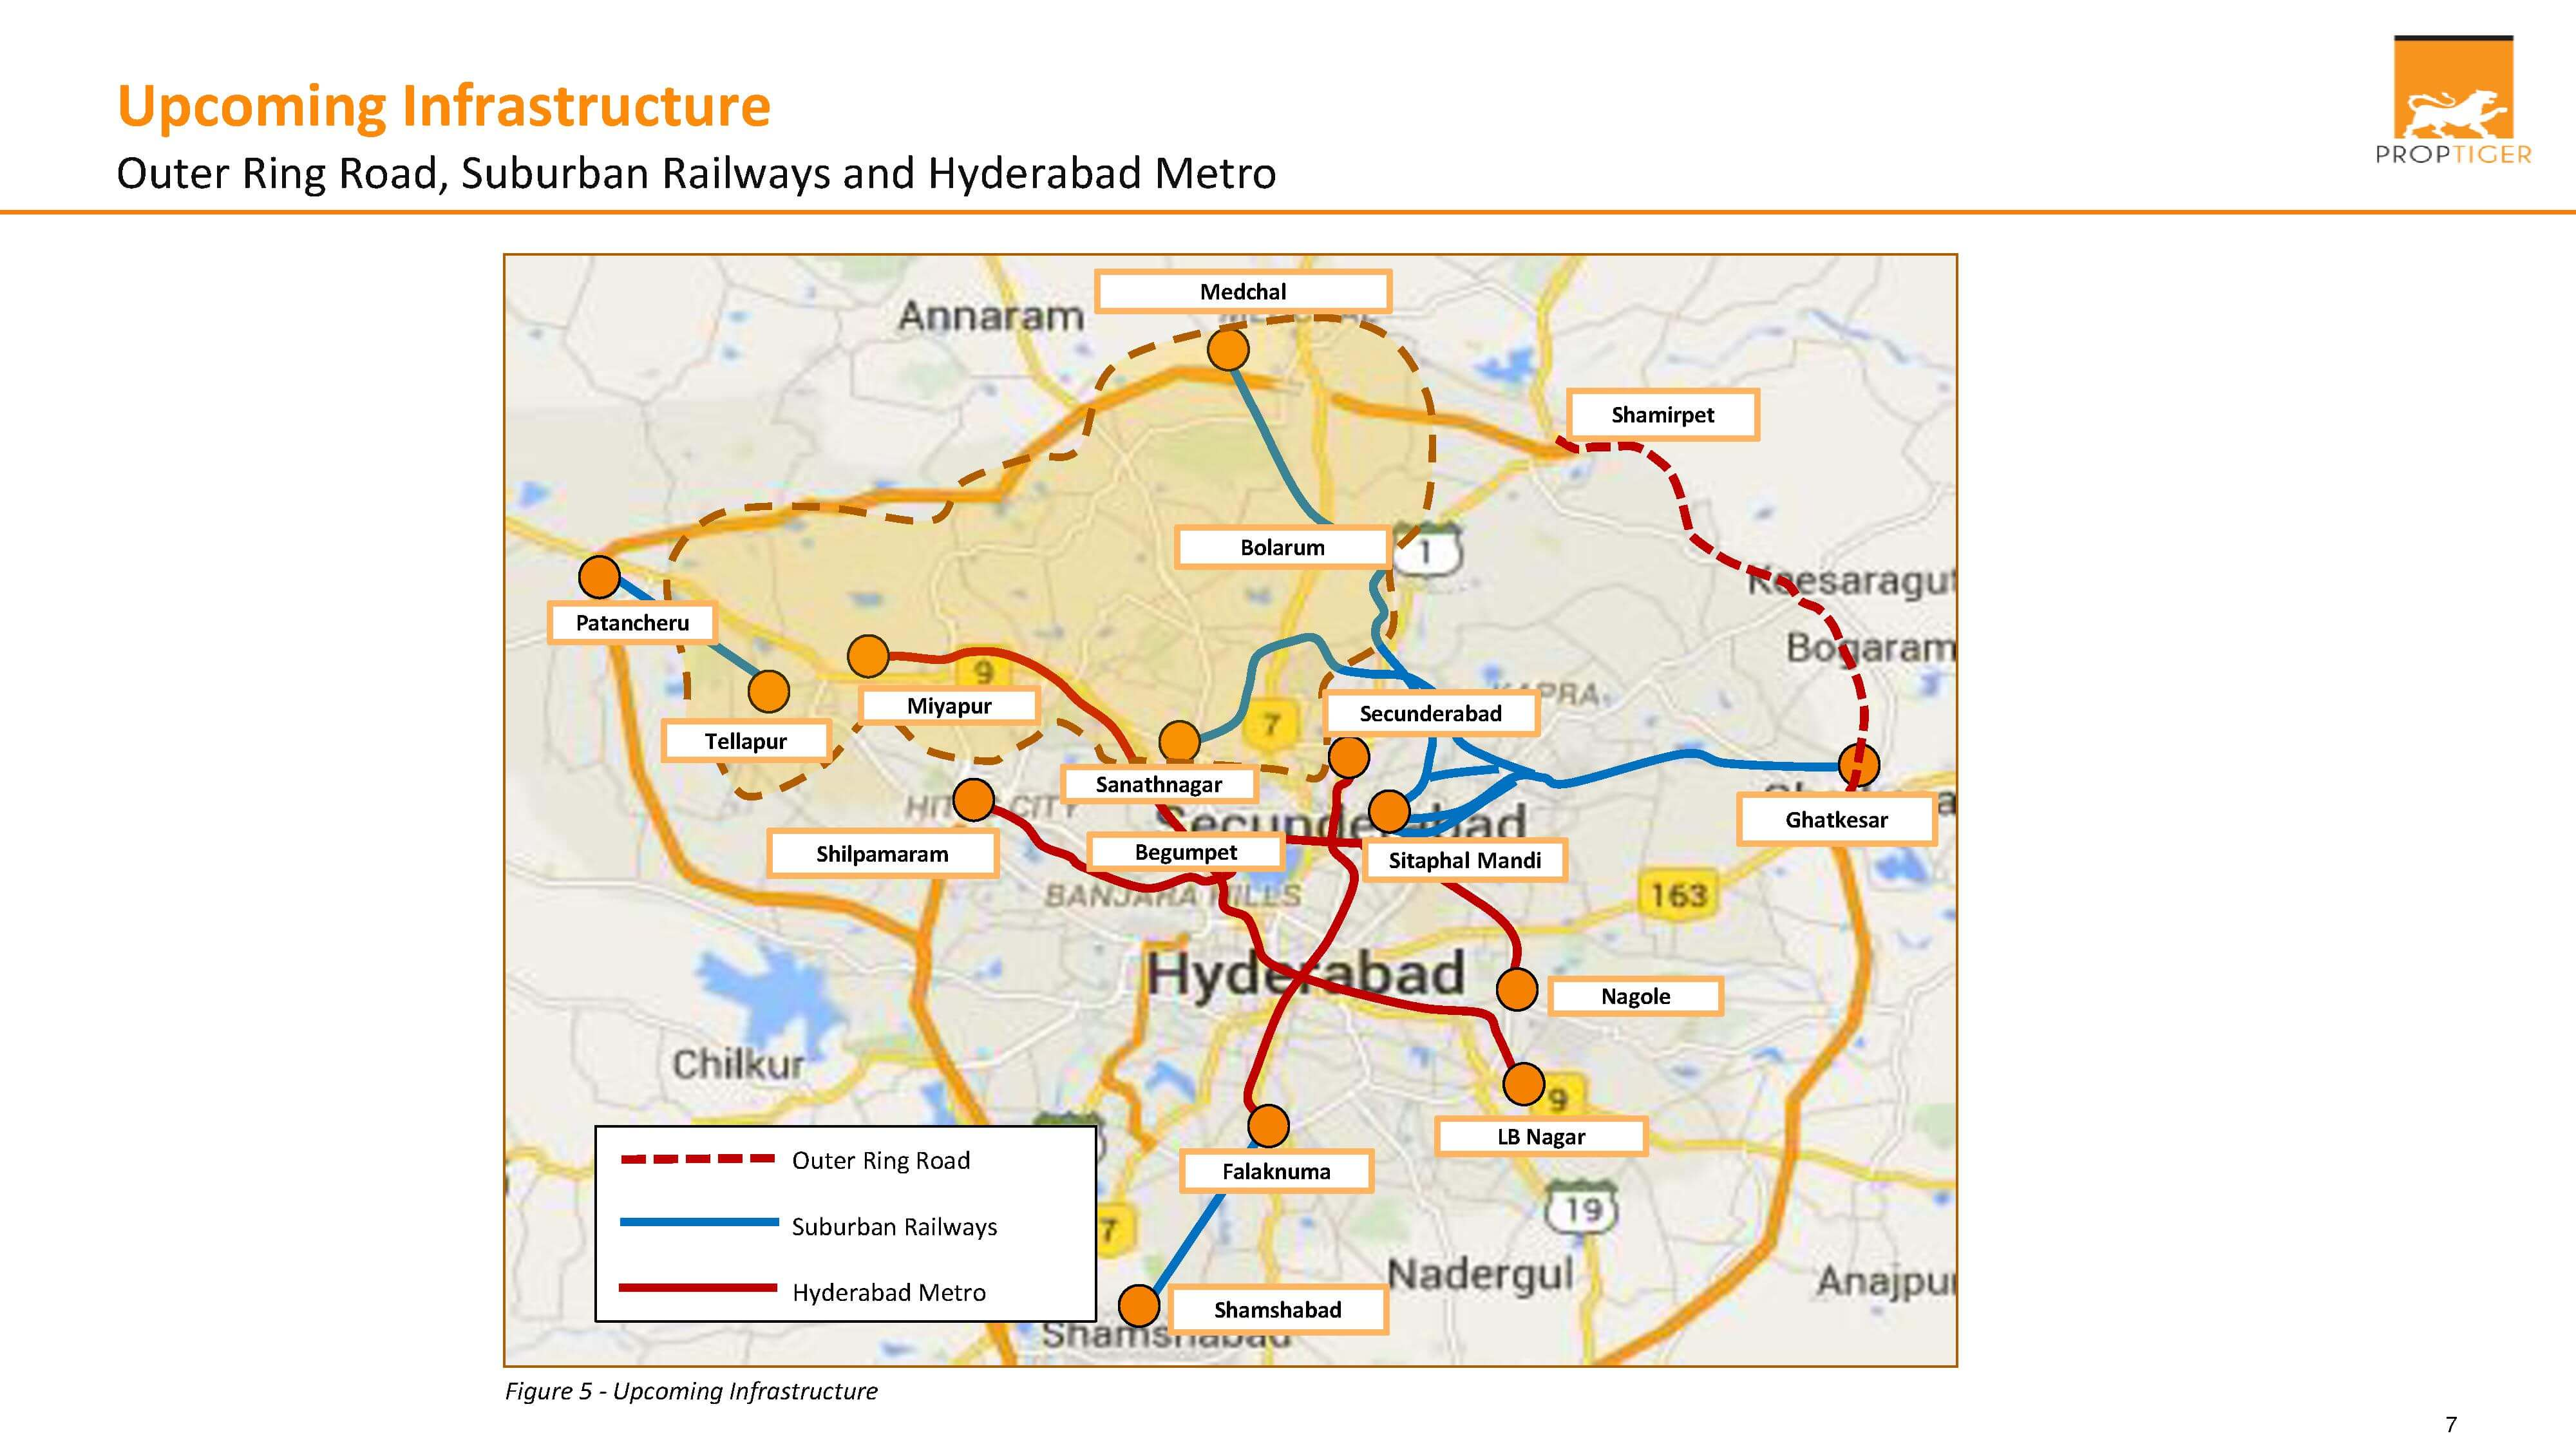 Upcoming Infrastructure - Outer Ring Road, Suburban Railways & Hyderabad Metro